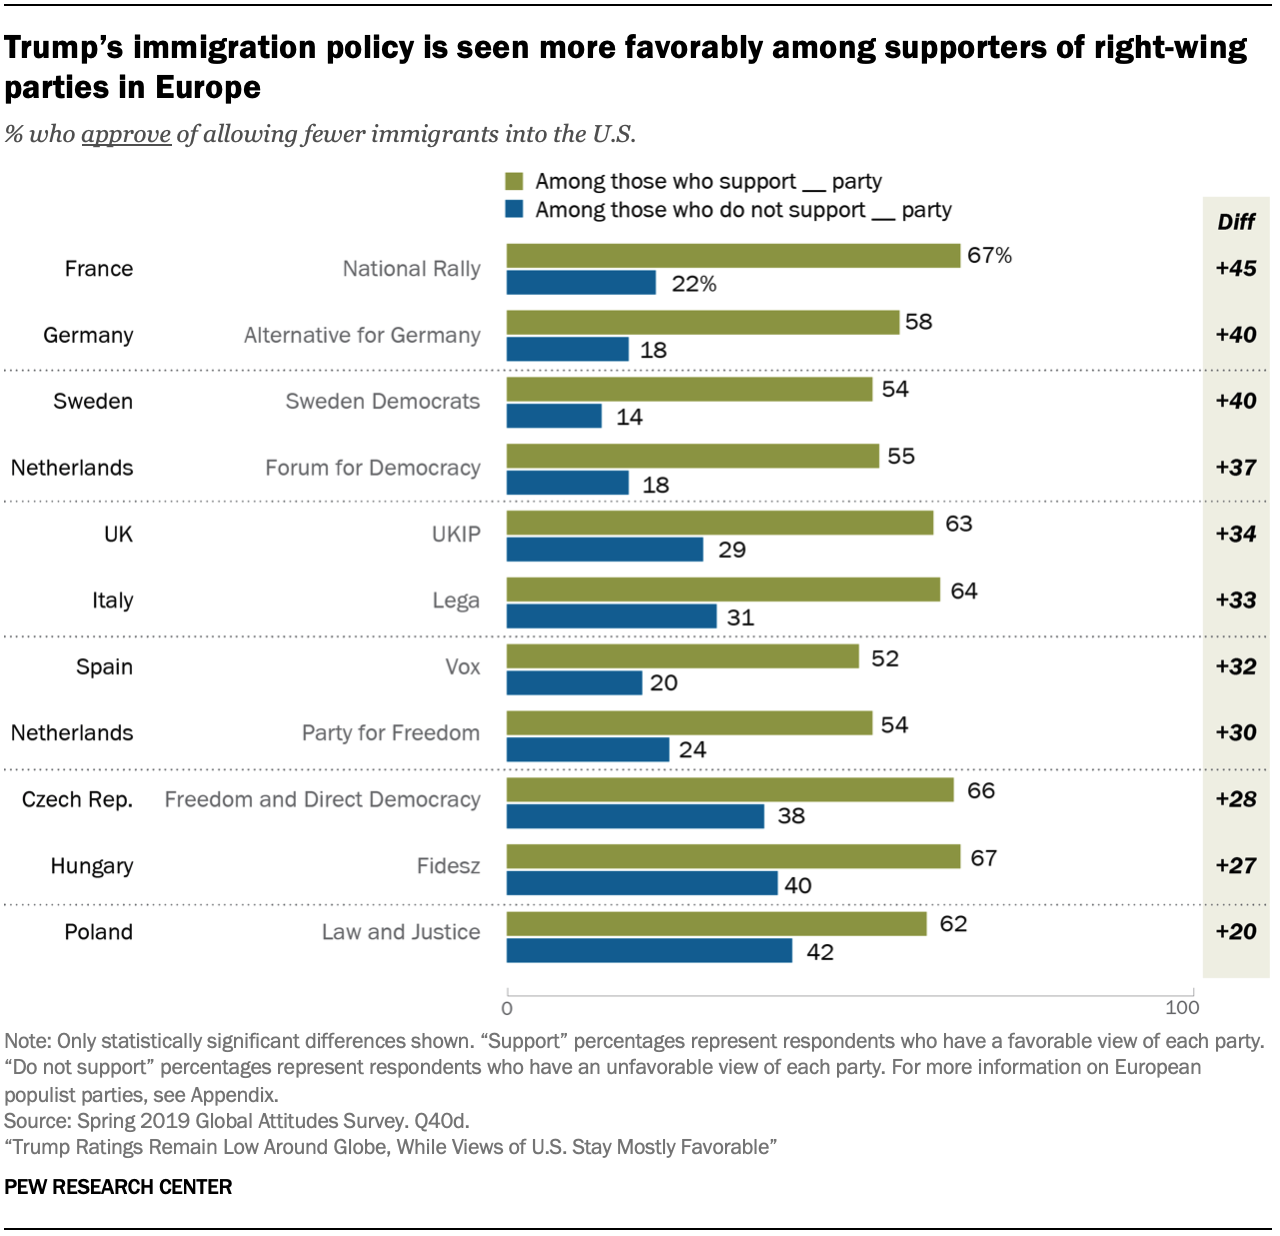 Trump's immigration policy is seen more favorably among supporters of right-wing parties in Europe